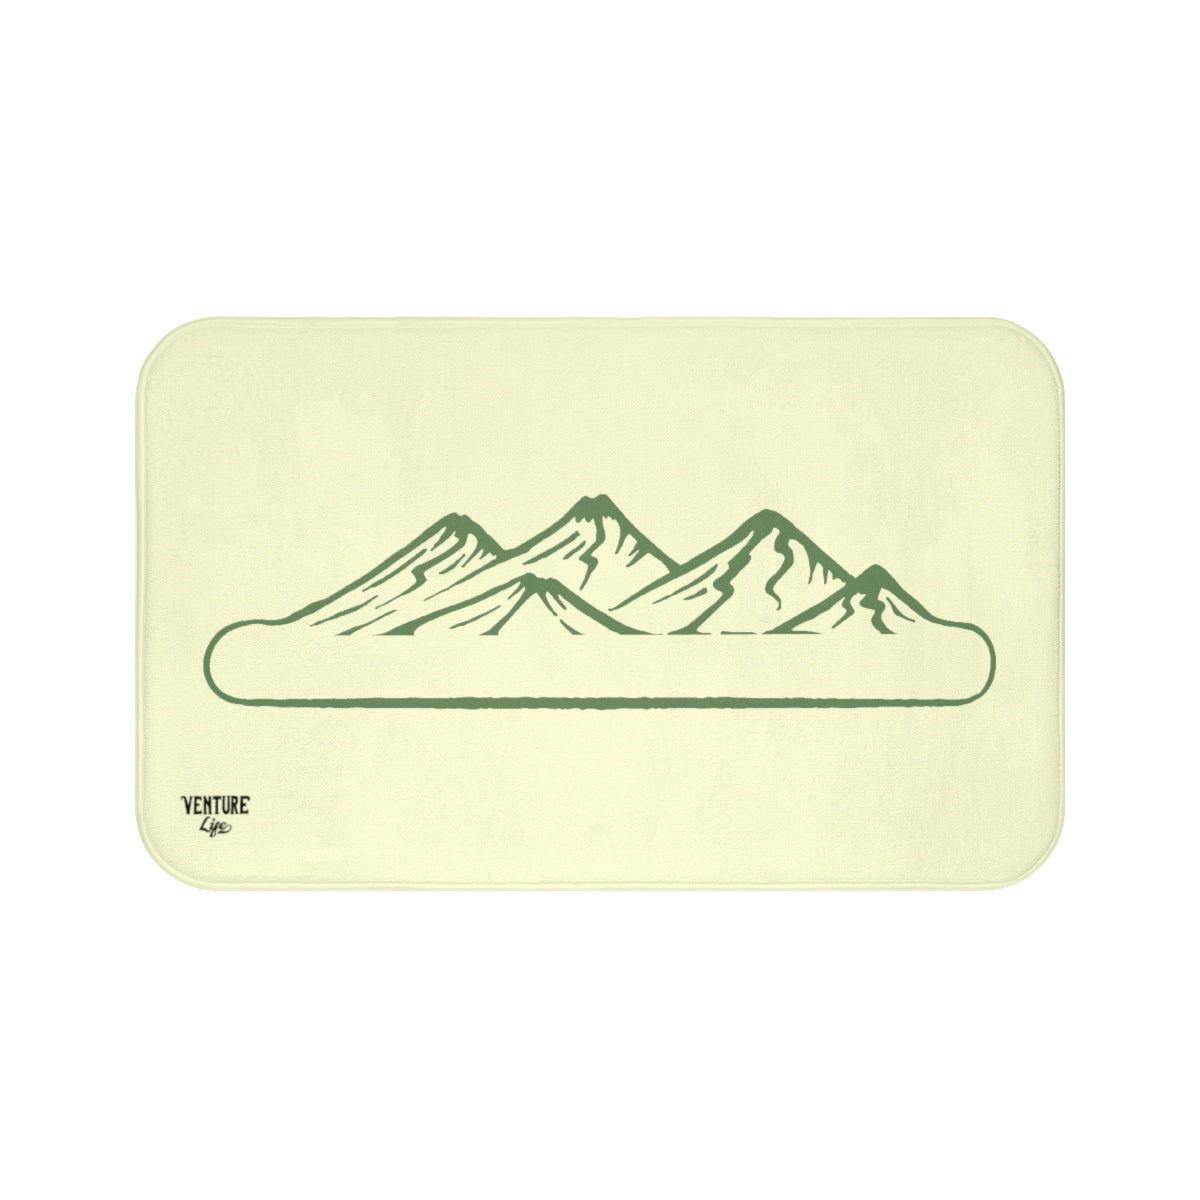 Venture Mountain Bath Mat